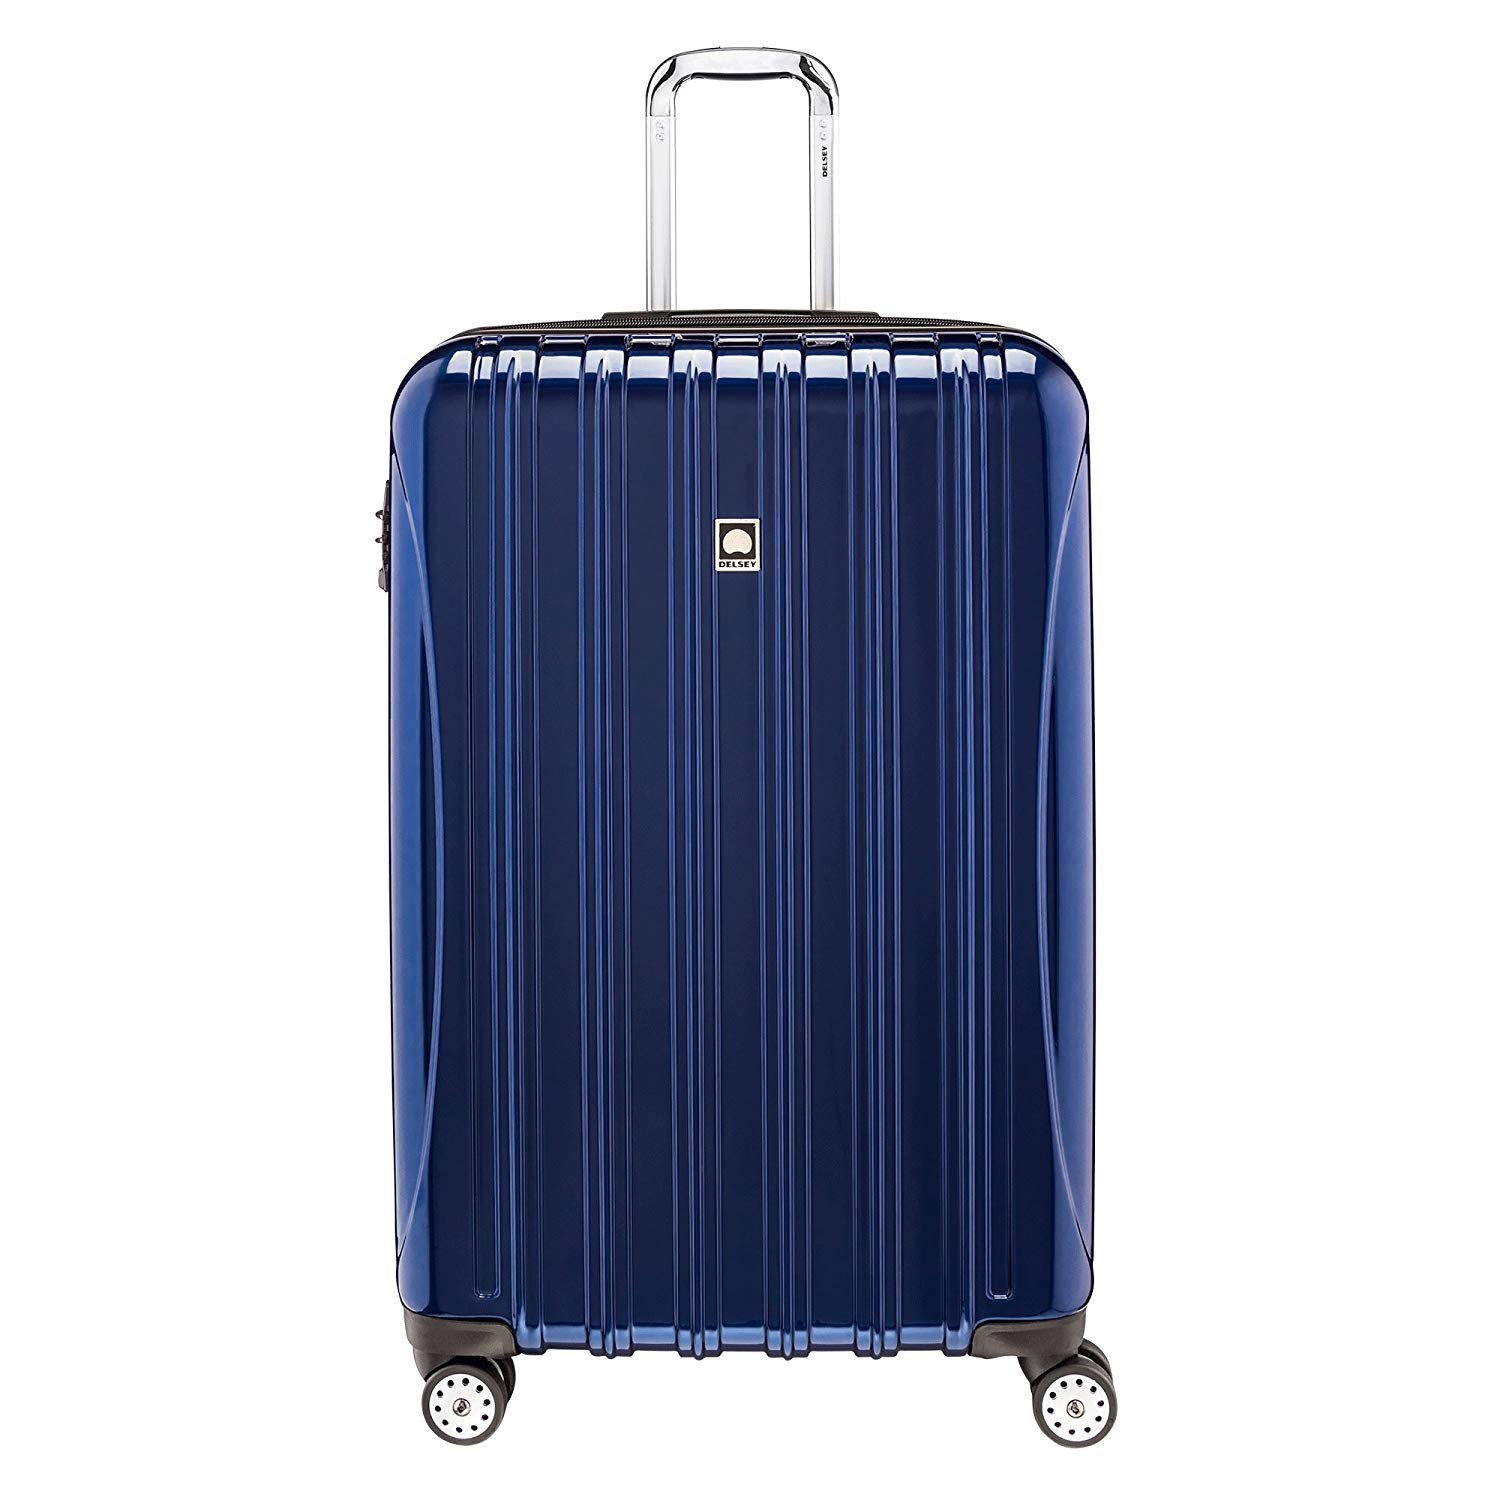 AmazonBasics Hardside Spinner Luggage 28 Inch